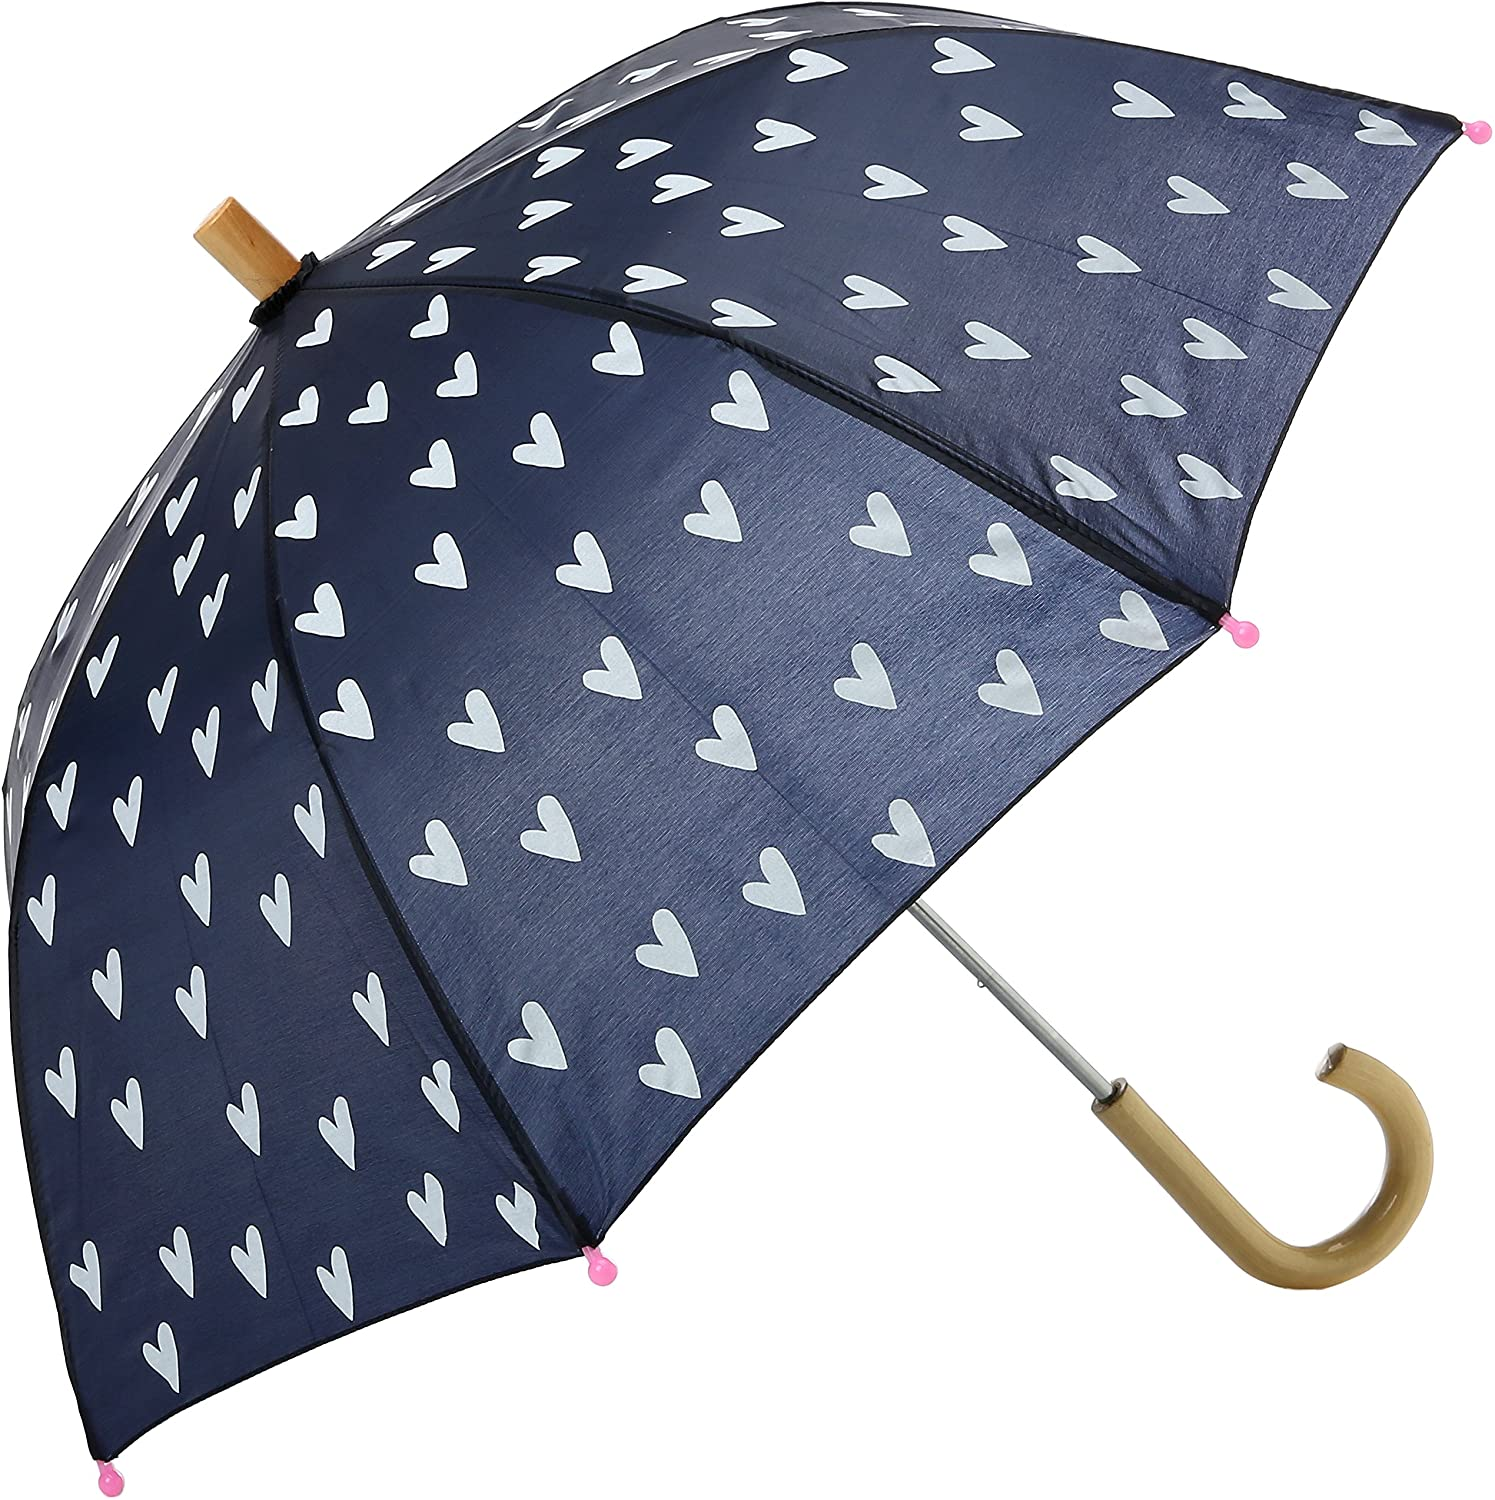 Hatley Girls' Little Printed Umbrellas, Navy and White Hearts